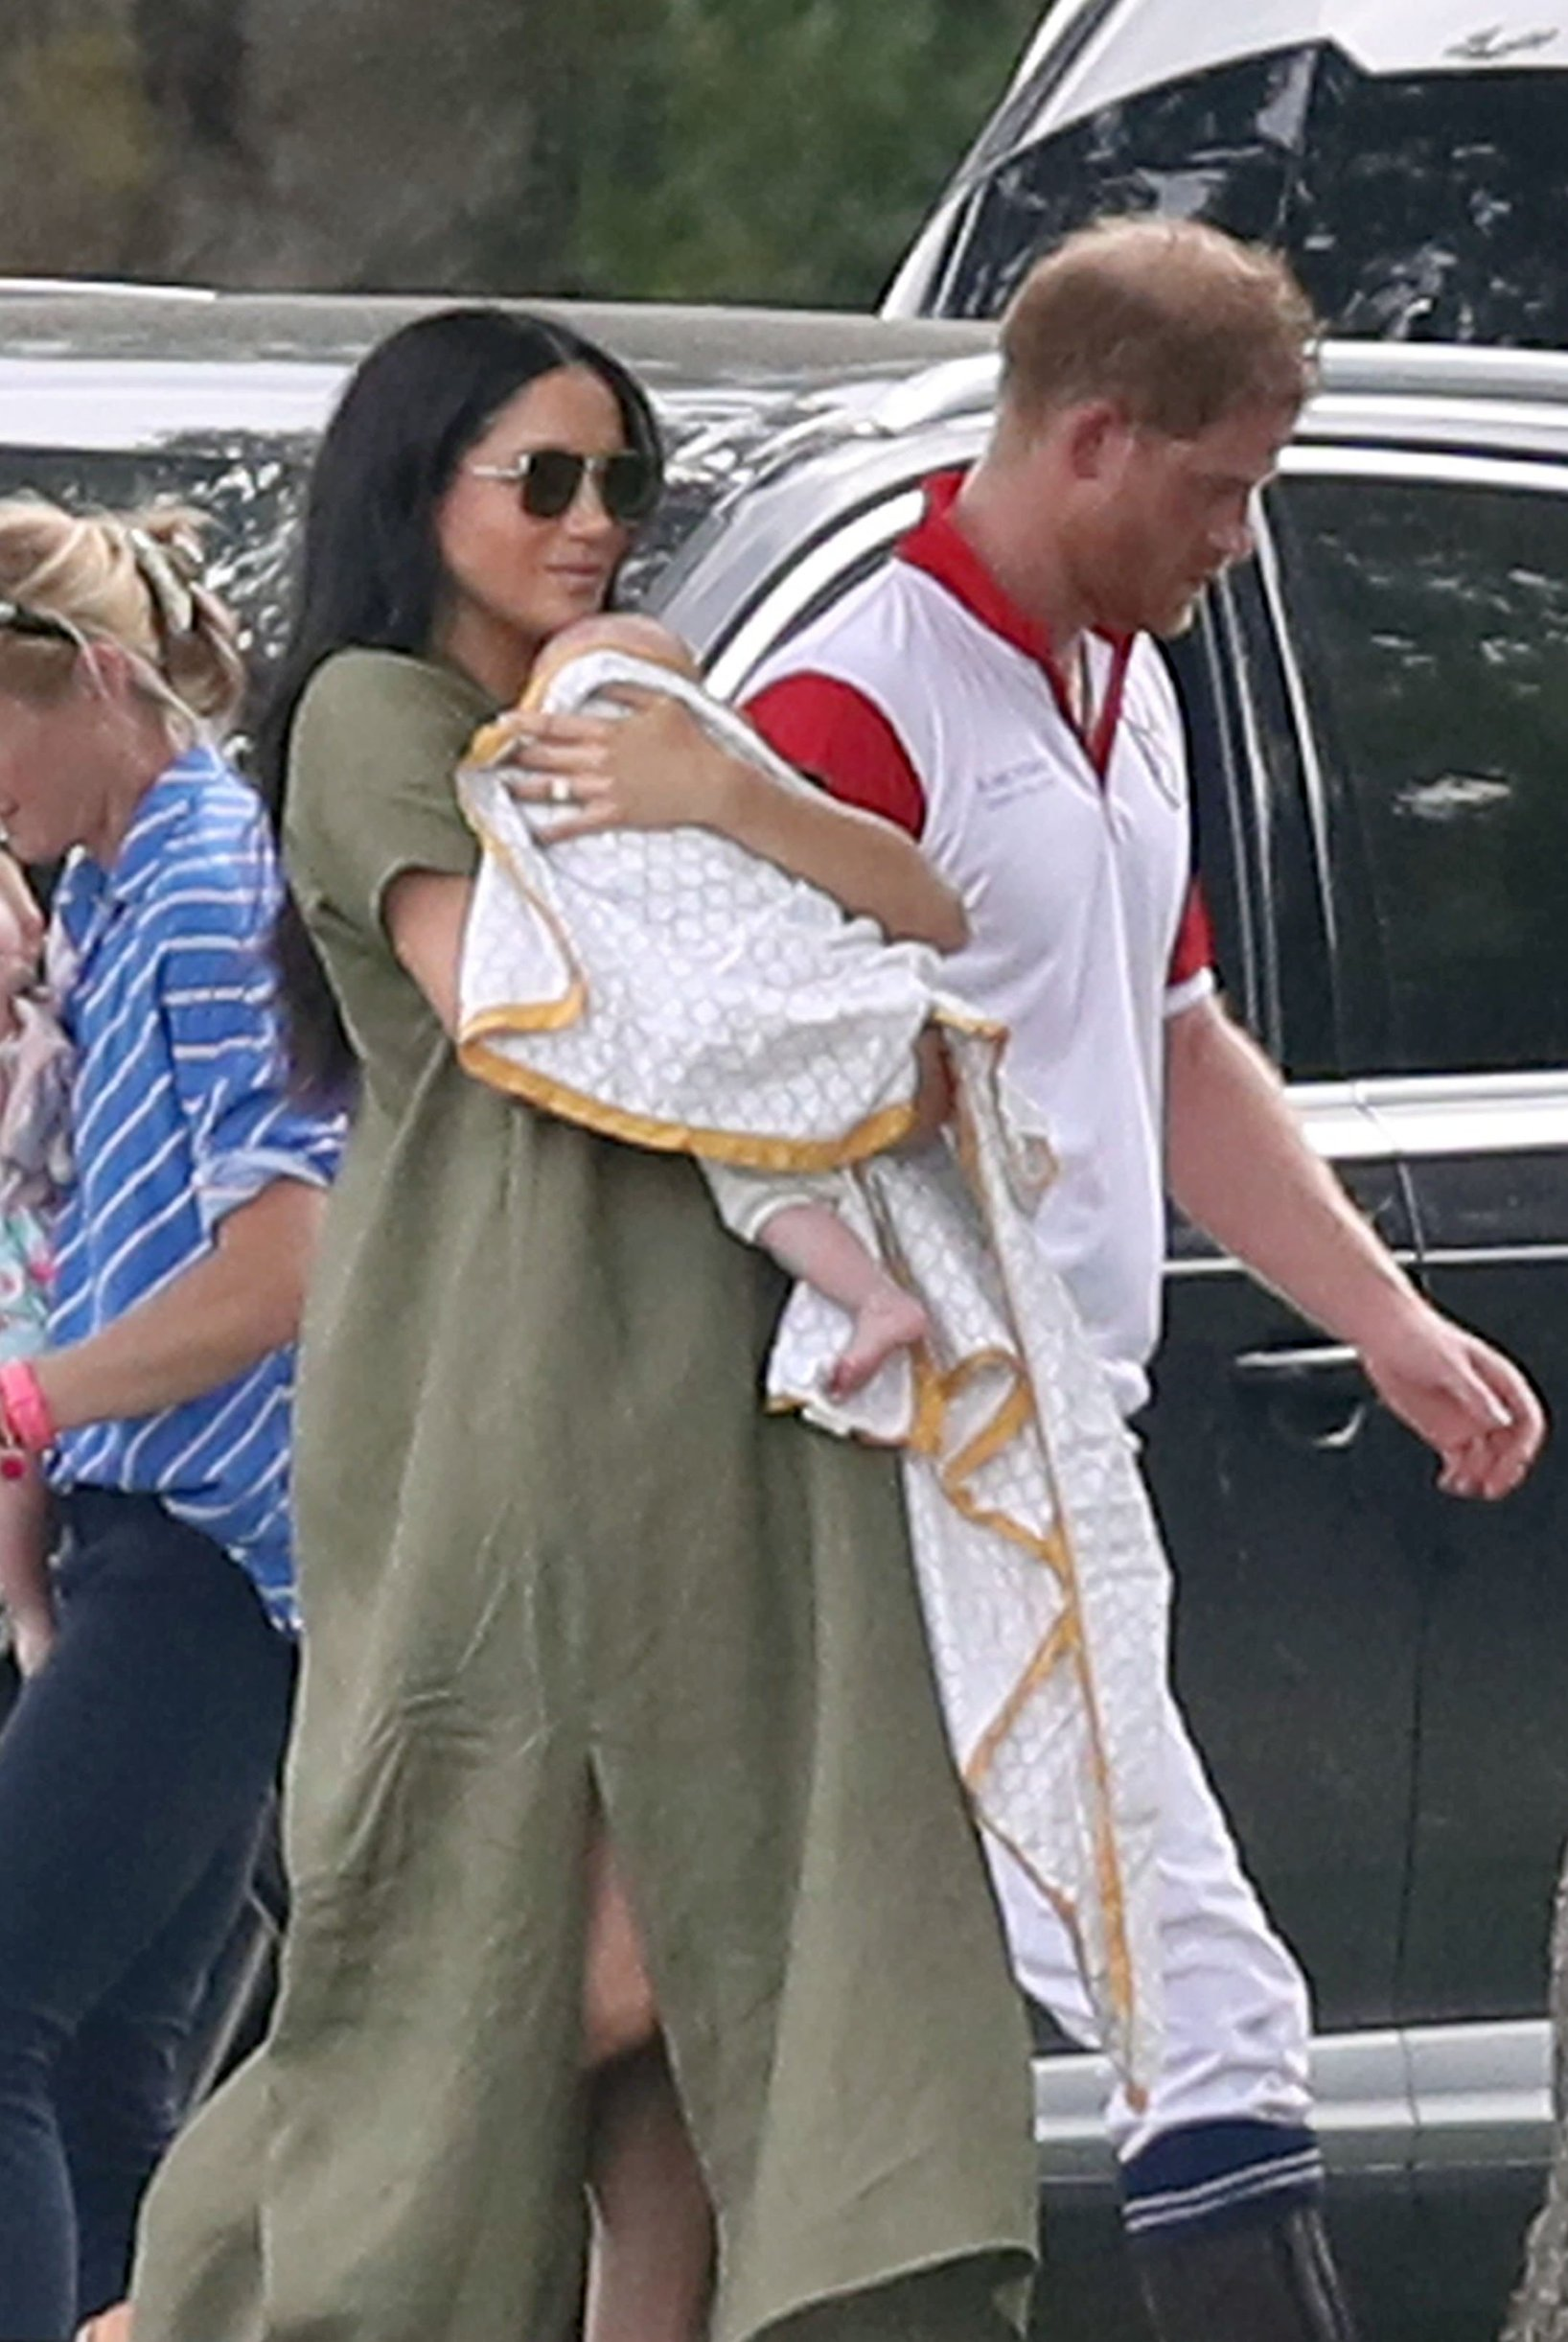 The Duke and Duchess of Sussex with their son Archie as they the King Power Royal Charity Polo Day at Billingbear Polo Club, Wokingham, Berkshire., Image: 456794669, License: Rights-managed, Restrictions: , Model Release: no, Credit line: Profimedia, Press Association